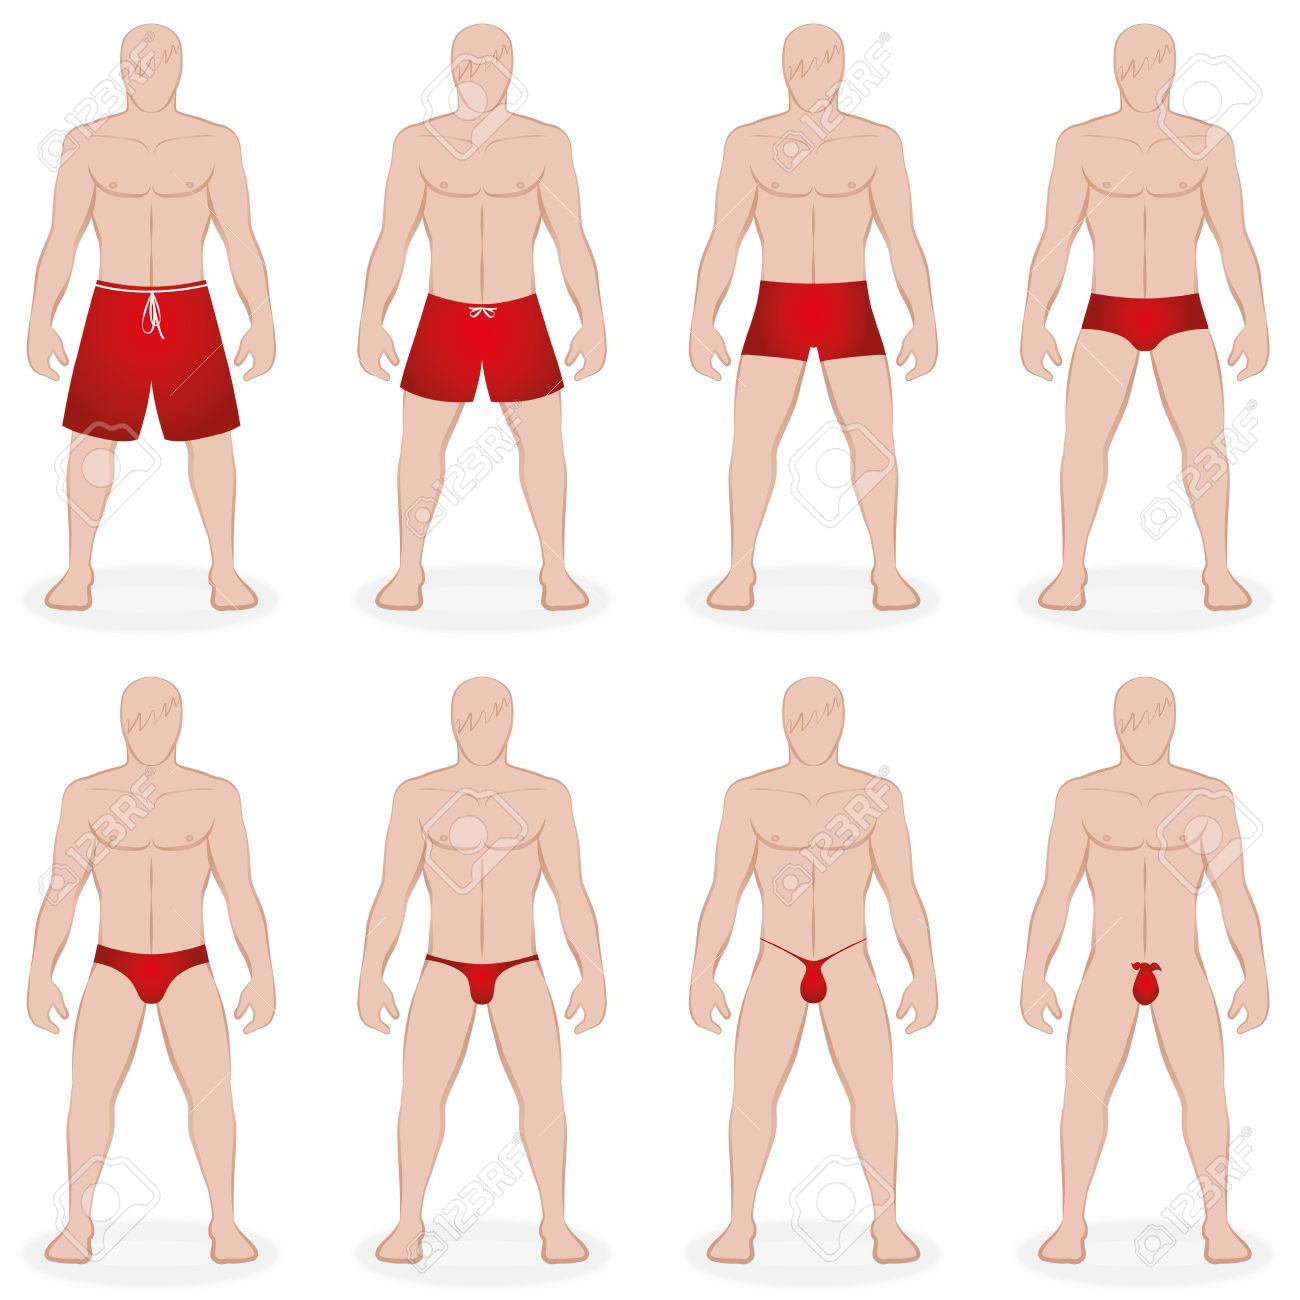 5b616a836f Mens swimwear - different swim trunks in various styles, lengths and sizes  - like bermudas